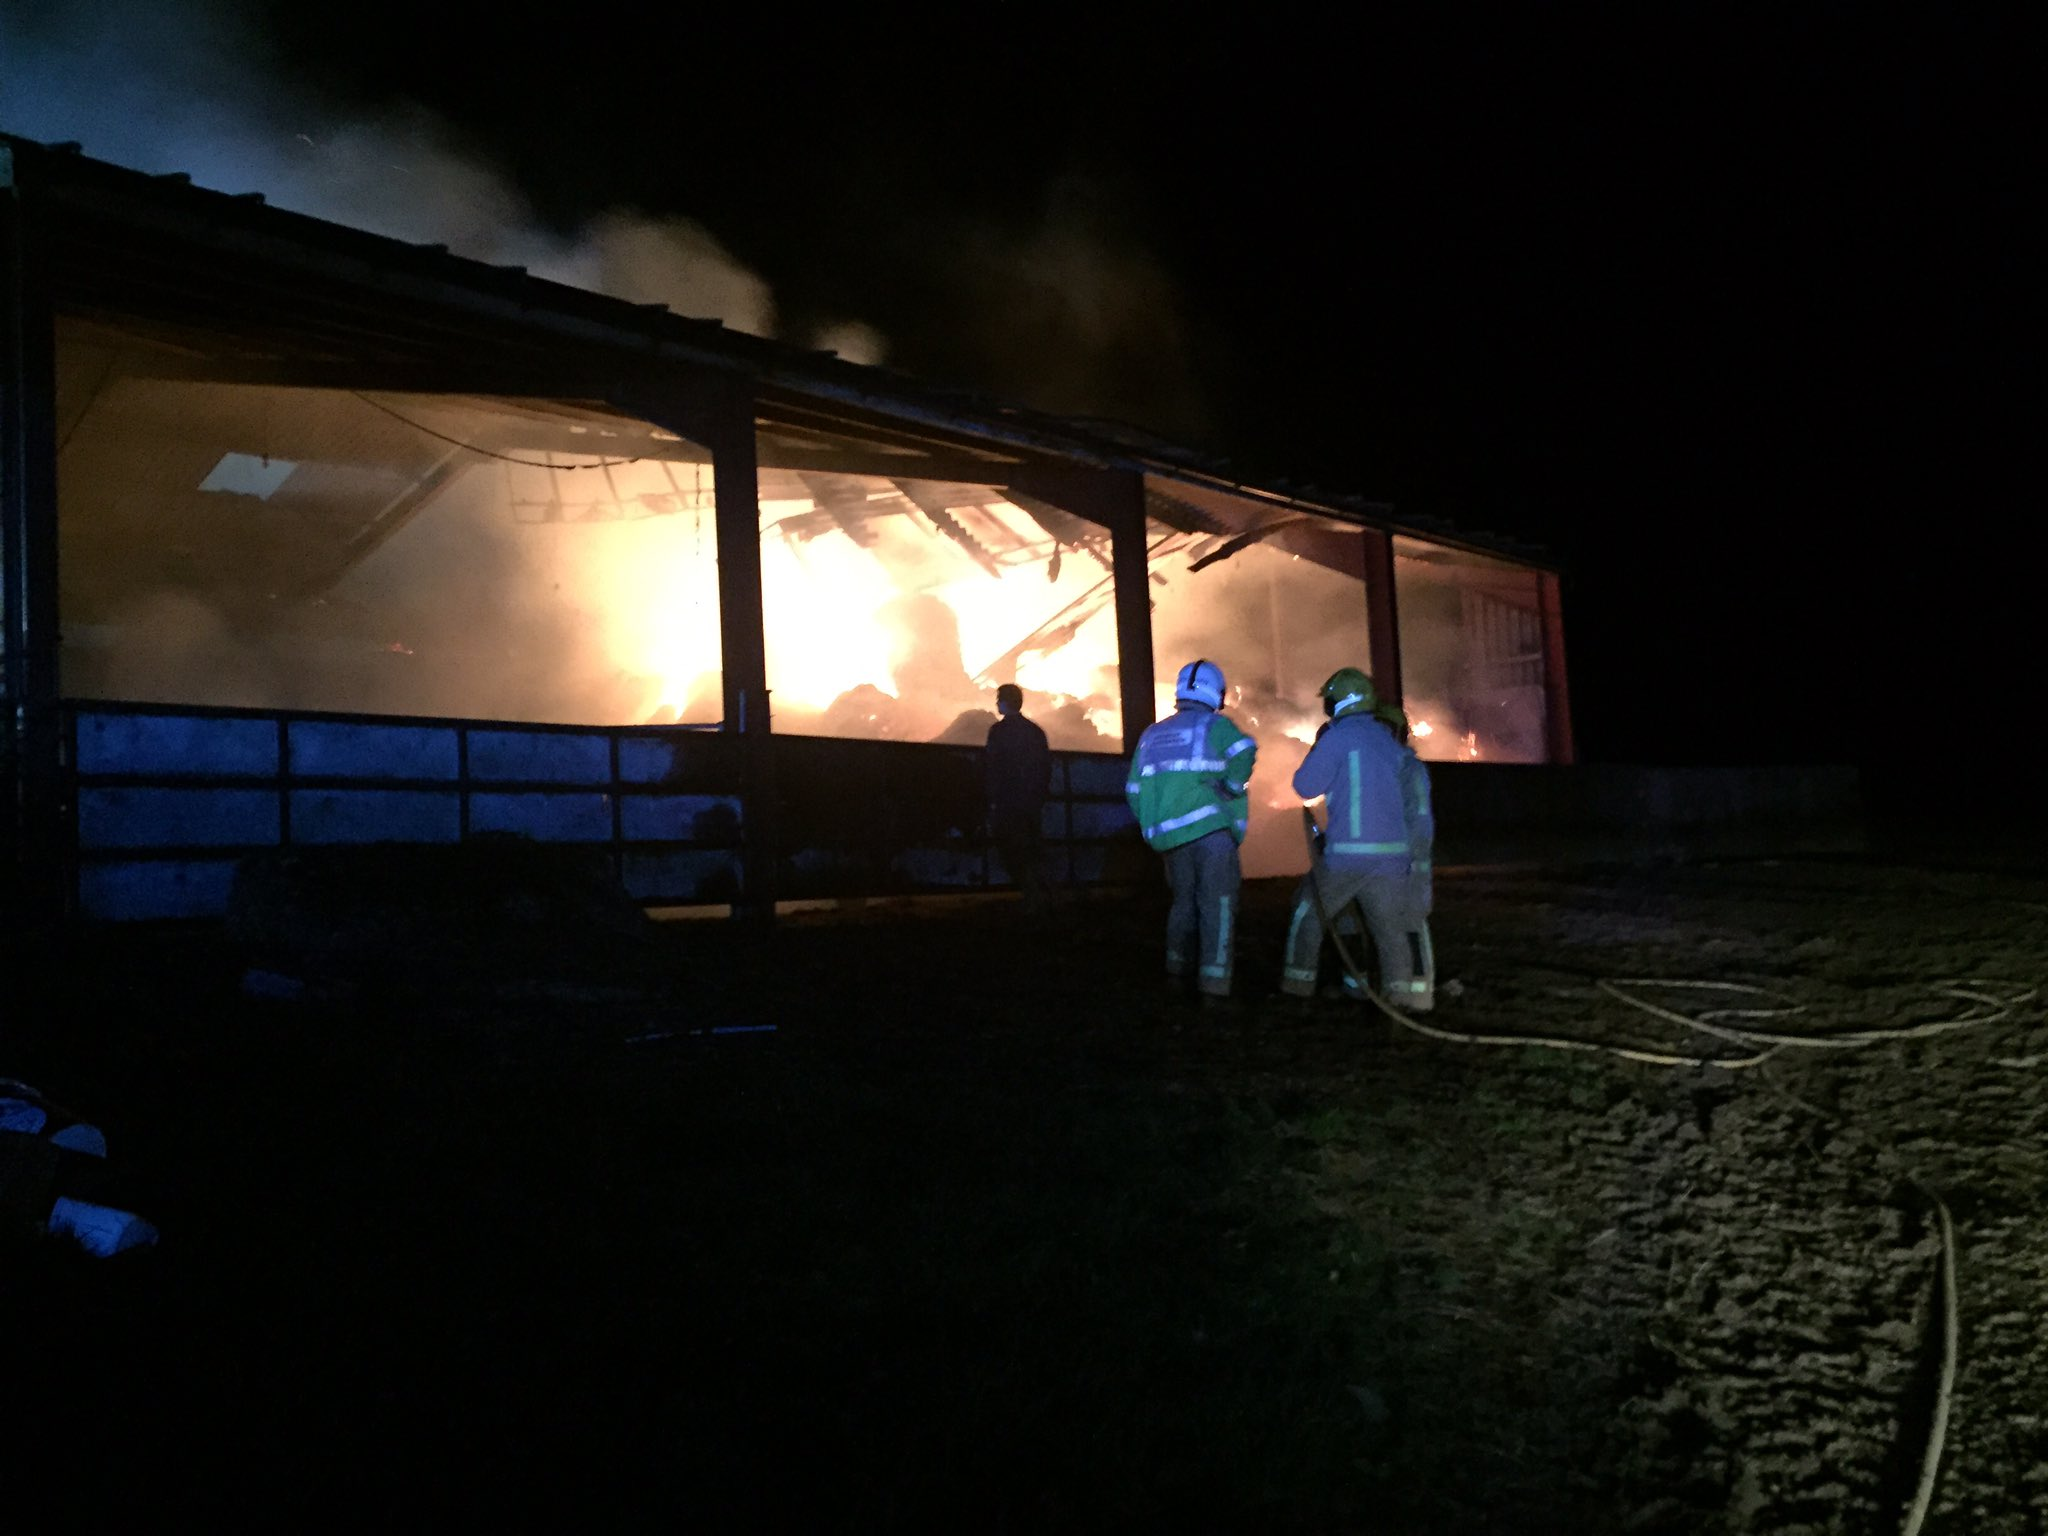 Firefighters work at the scene of the fire in Shipton. Photo: @SFRS_CravenArms